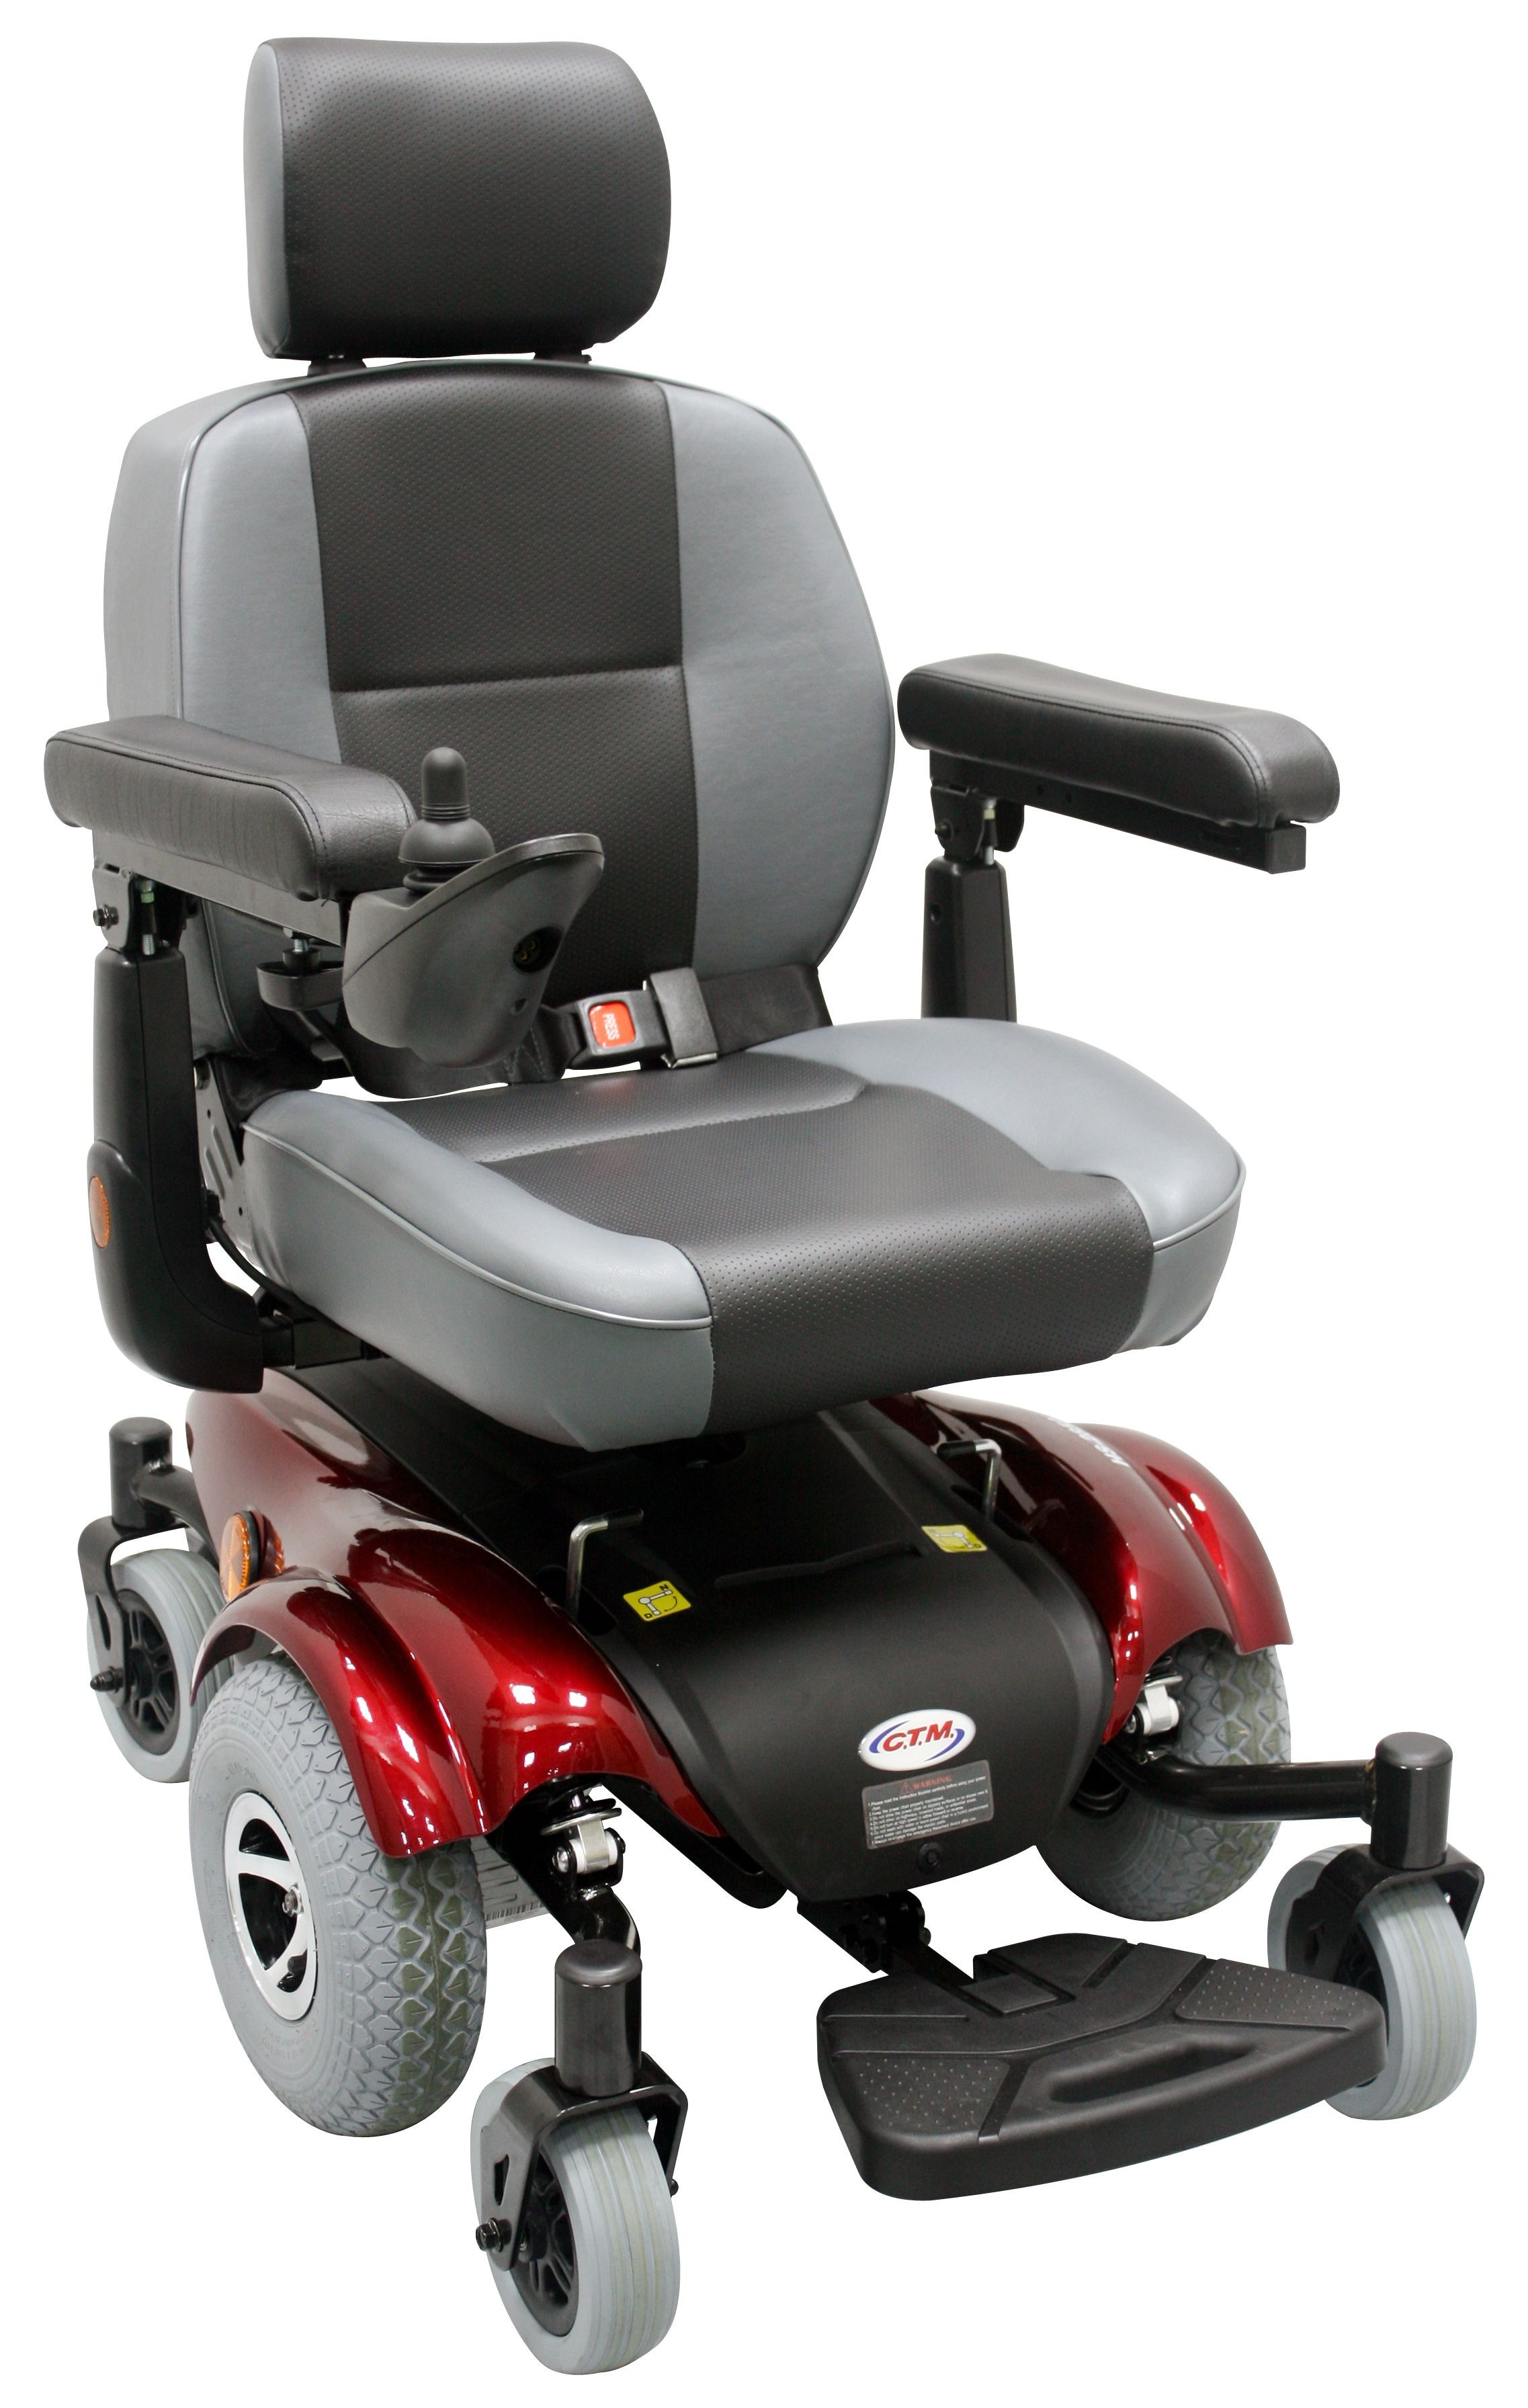 Electric Chair Mobility Ctm Hs 2850 Power Wheelchair For Sale Lowest Prices Tax